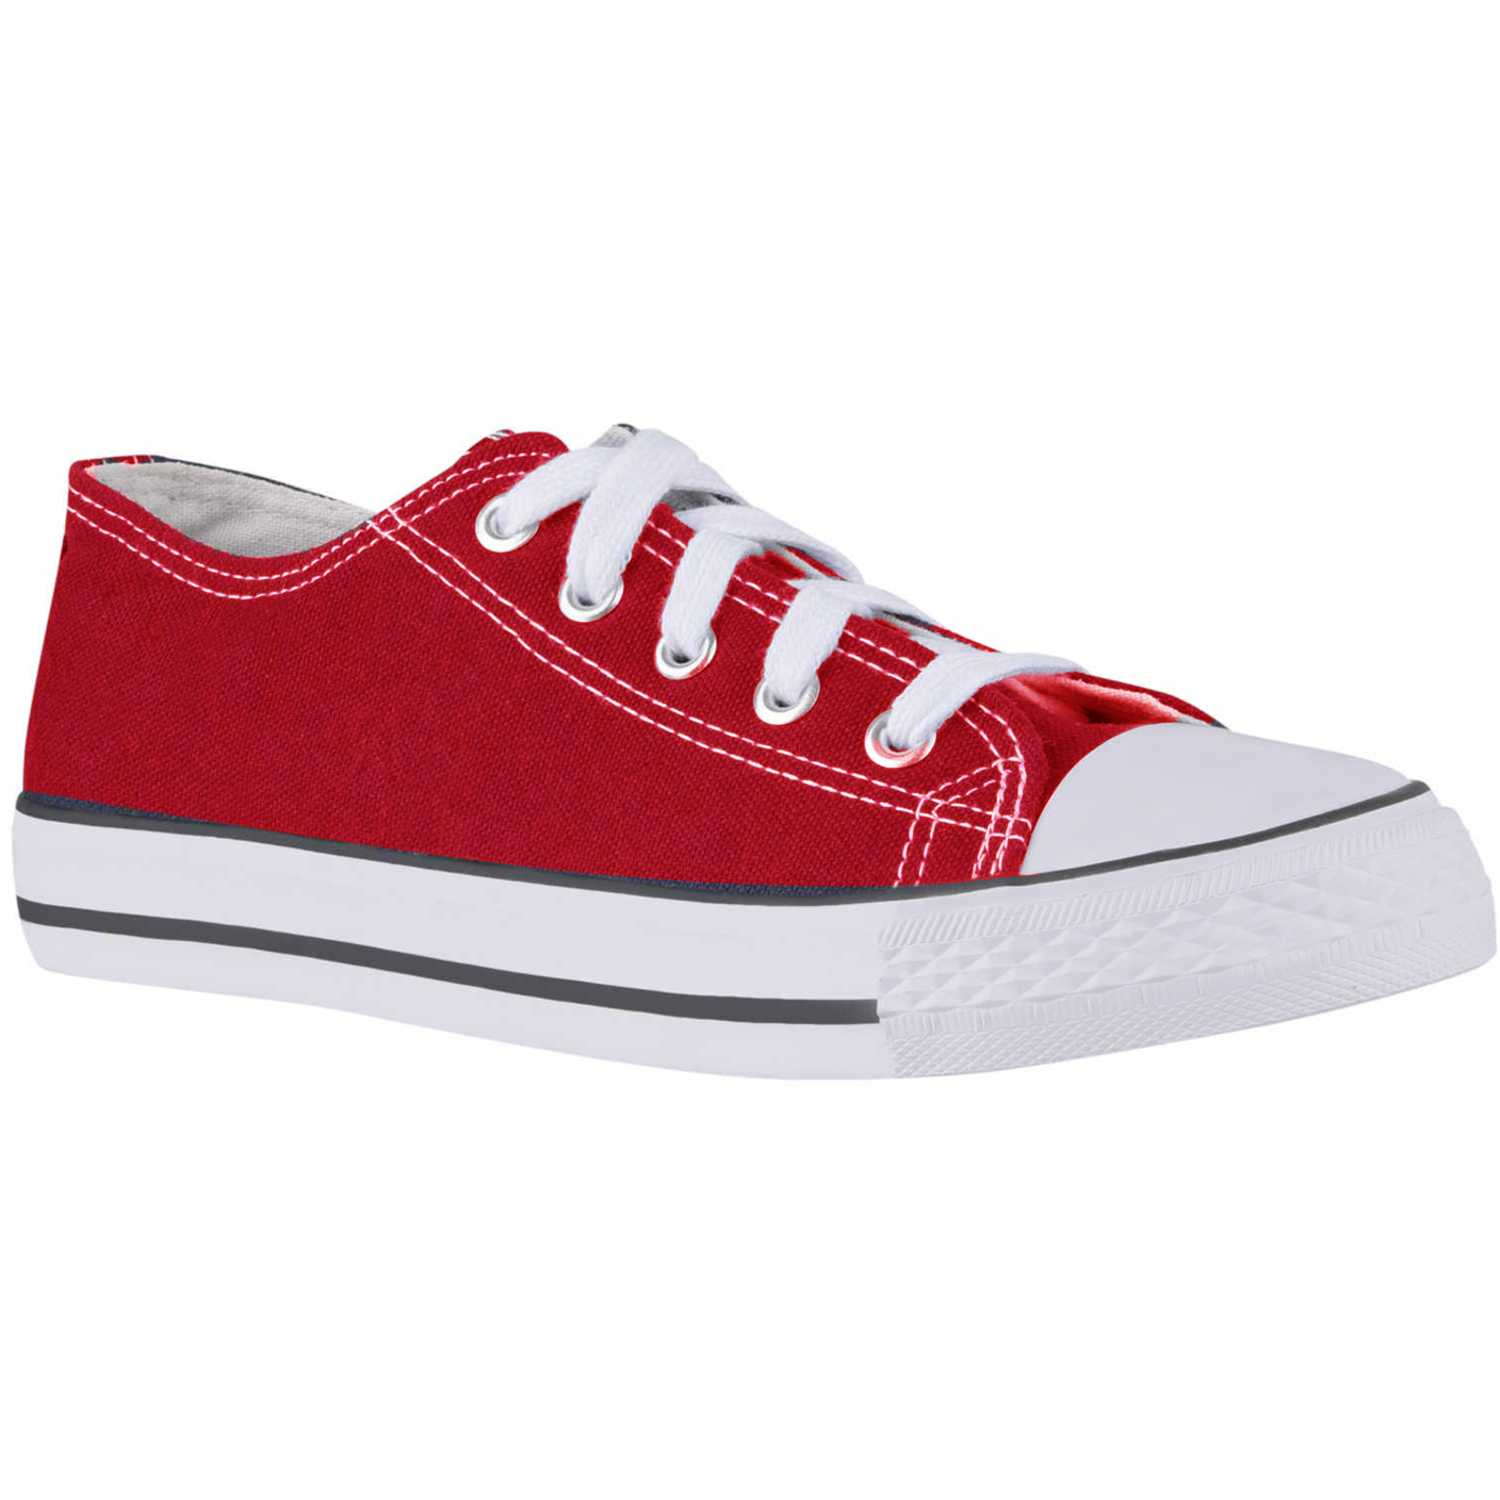 Just4u zc-418 Rojo Zapatillas Fashion